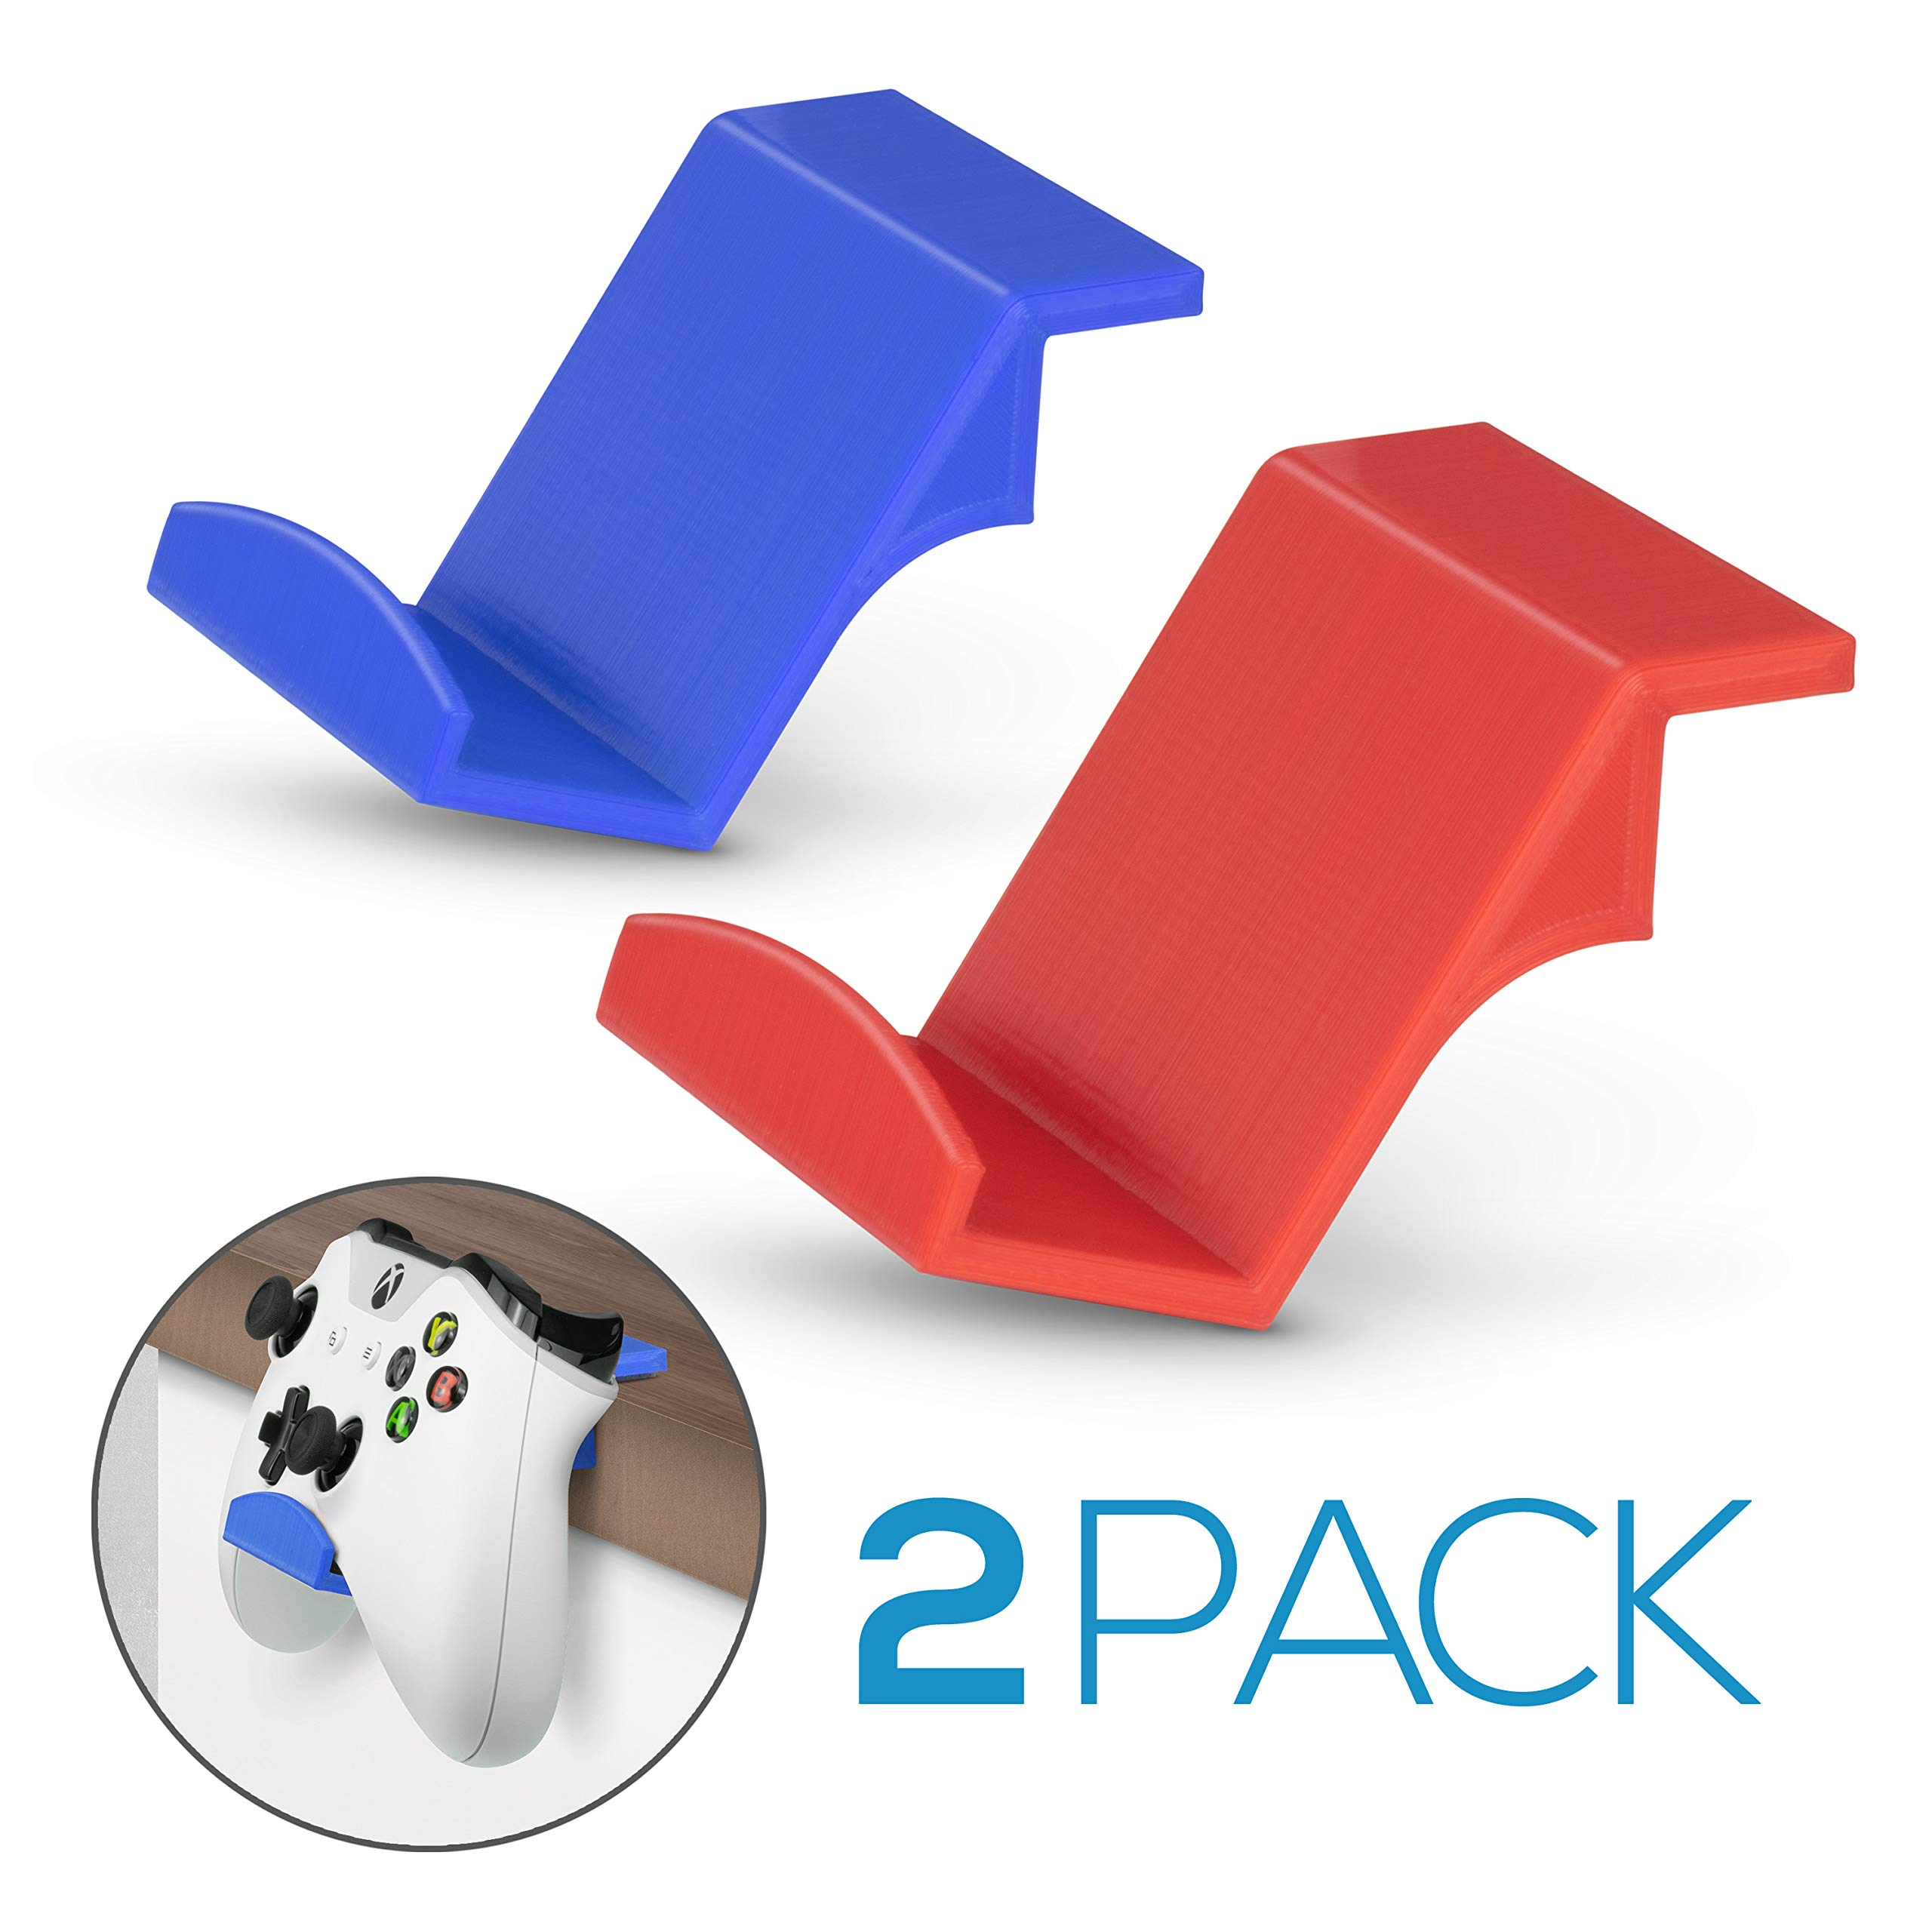 Game Controller Desktop Stand Holder (2 Pack) for XBOX ONE 360 SWITCH PS4 STEAM PC NINTENDO, Universal Gamepad Accessories - No screws, Stick on, Red & Blue By Brainwavz by BRAINWAVZ